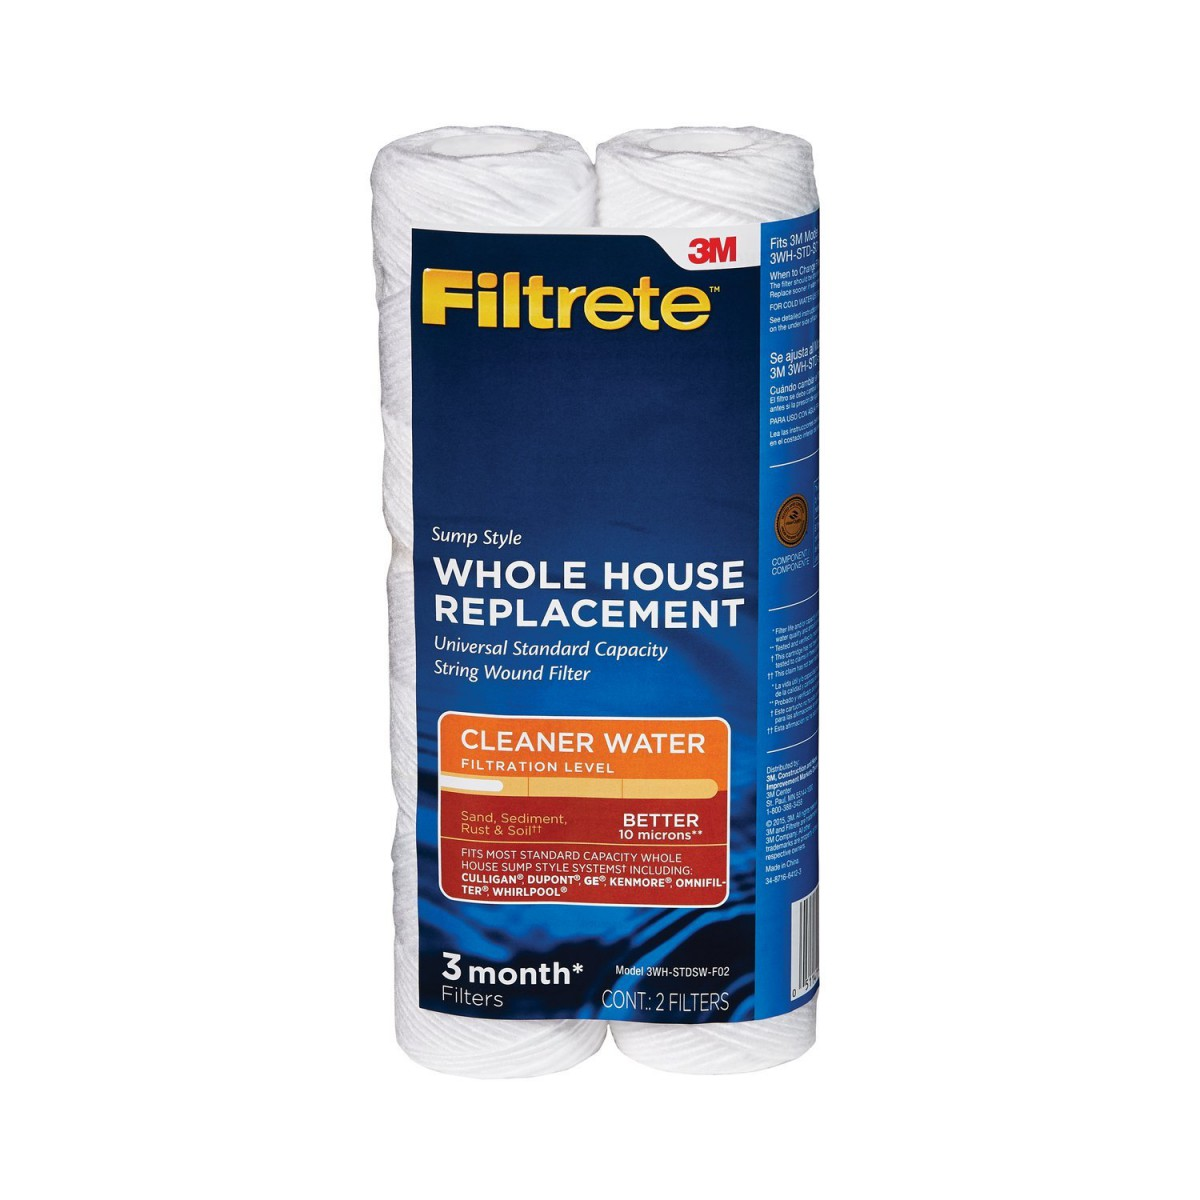 3wh Stdsw F02 3m Filtrete Water Filter 2pk